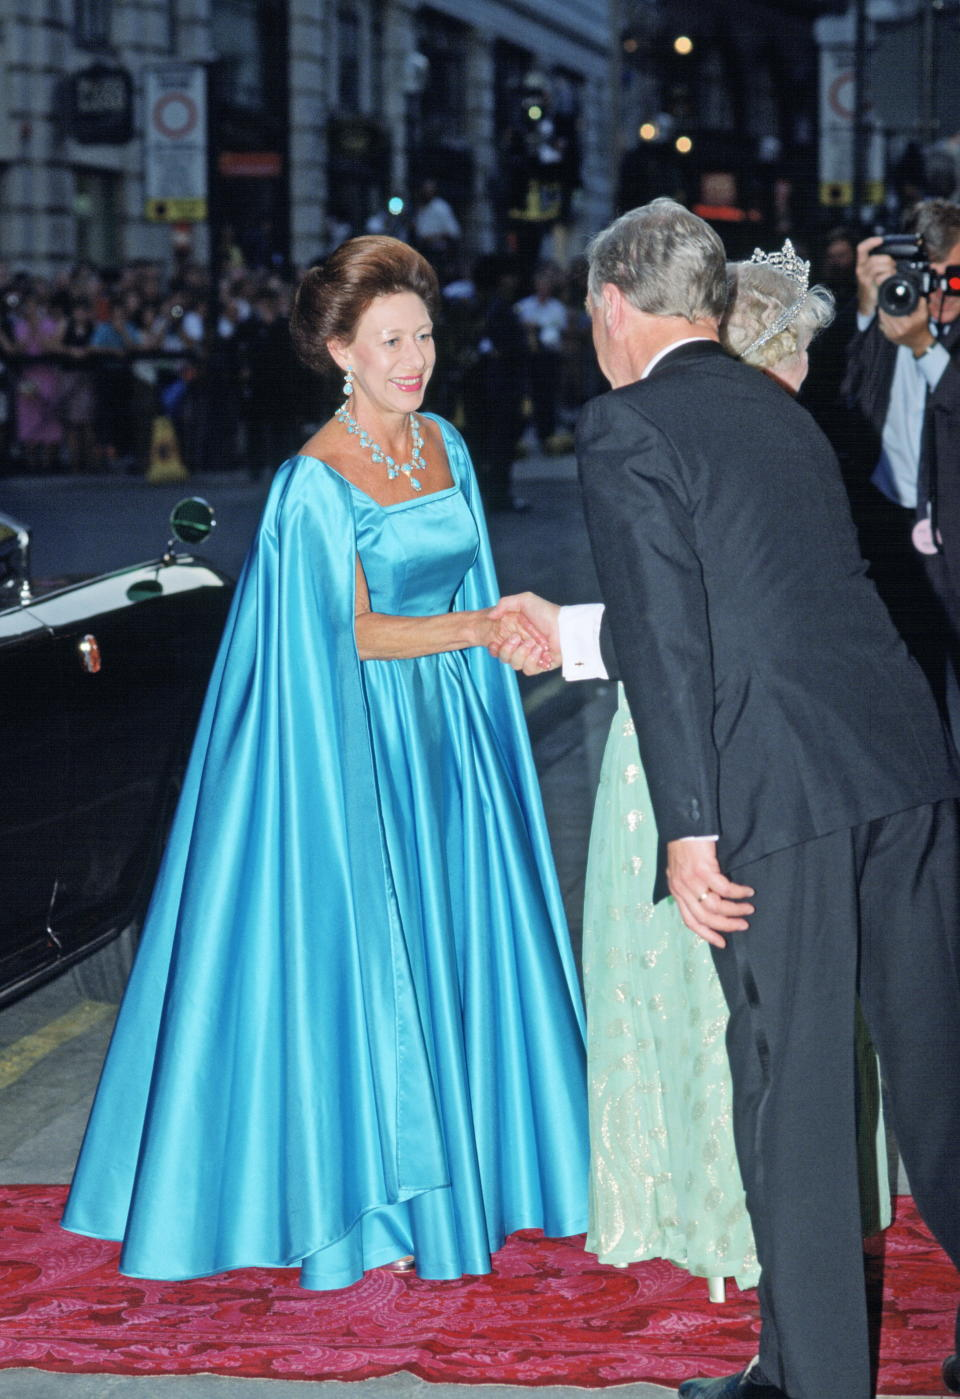 LONDON, UNITED KINGDOM - JULY 19:  Princess Margaret At The London Palladium For The Queen Mother's 90th Birthday.  (Photo by Tim Graham Photo Library via Getty Images)